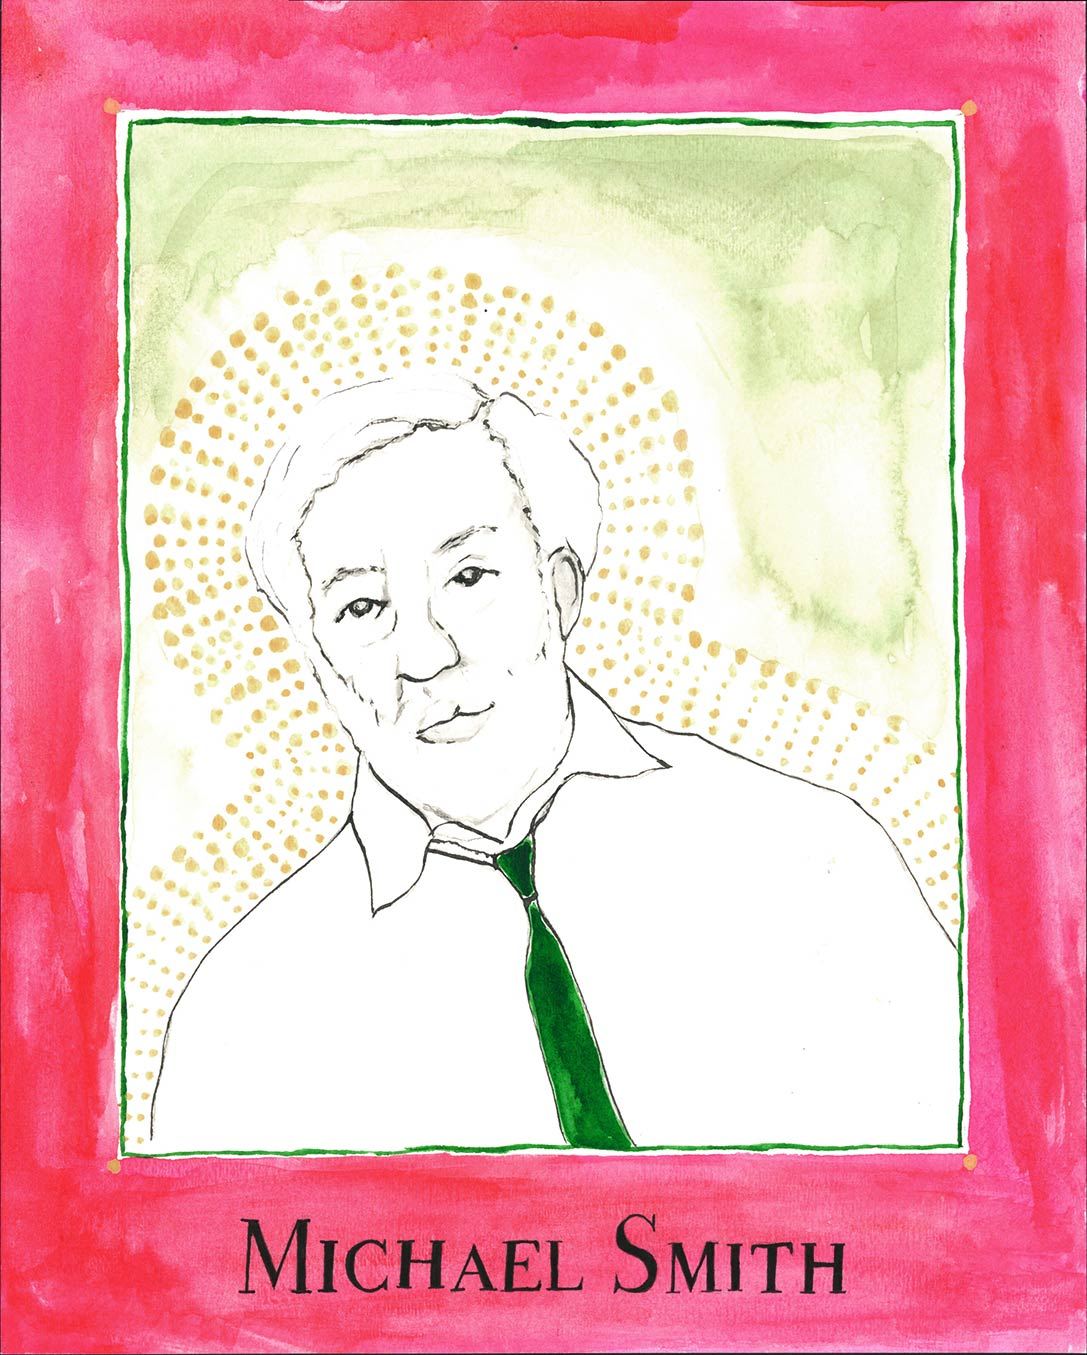 Drawn portrait of older white man with red border